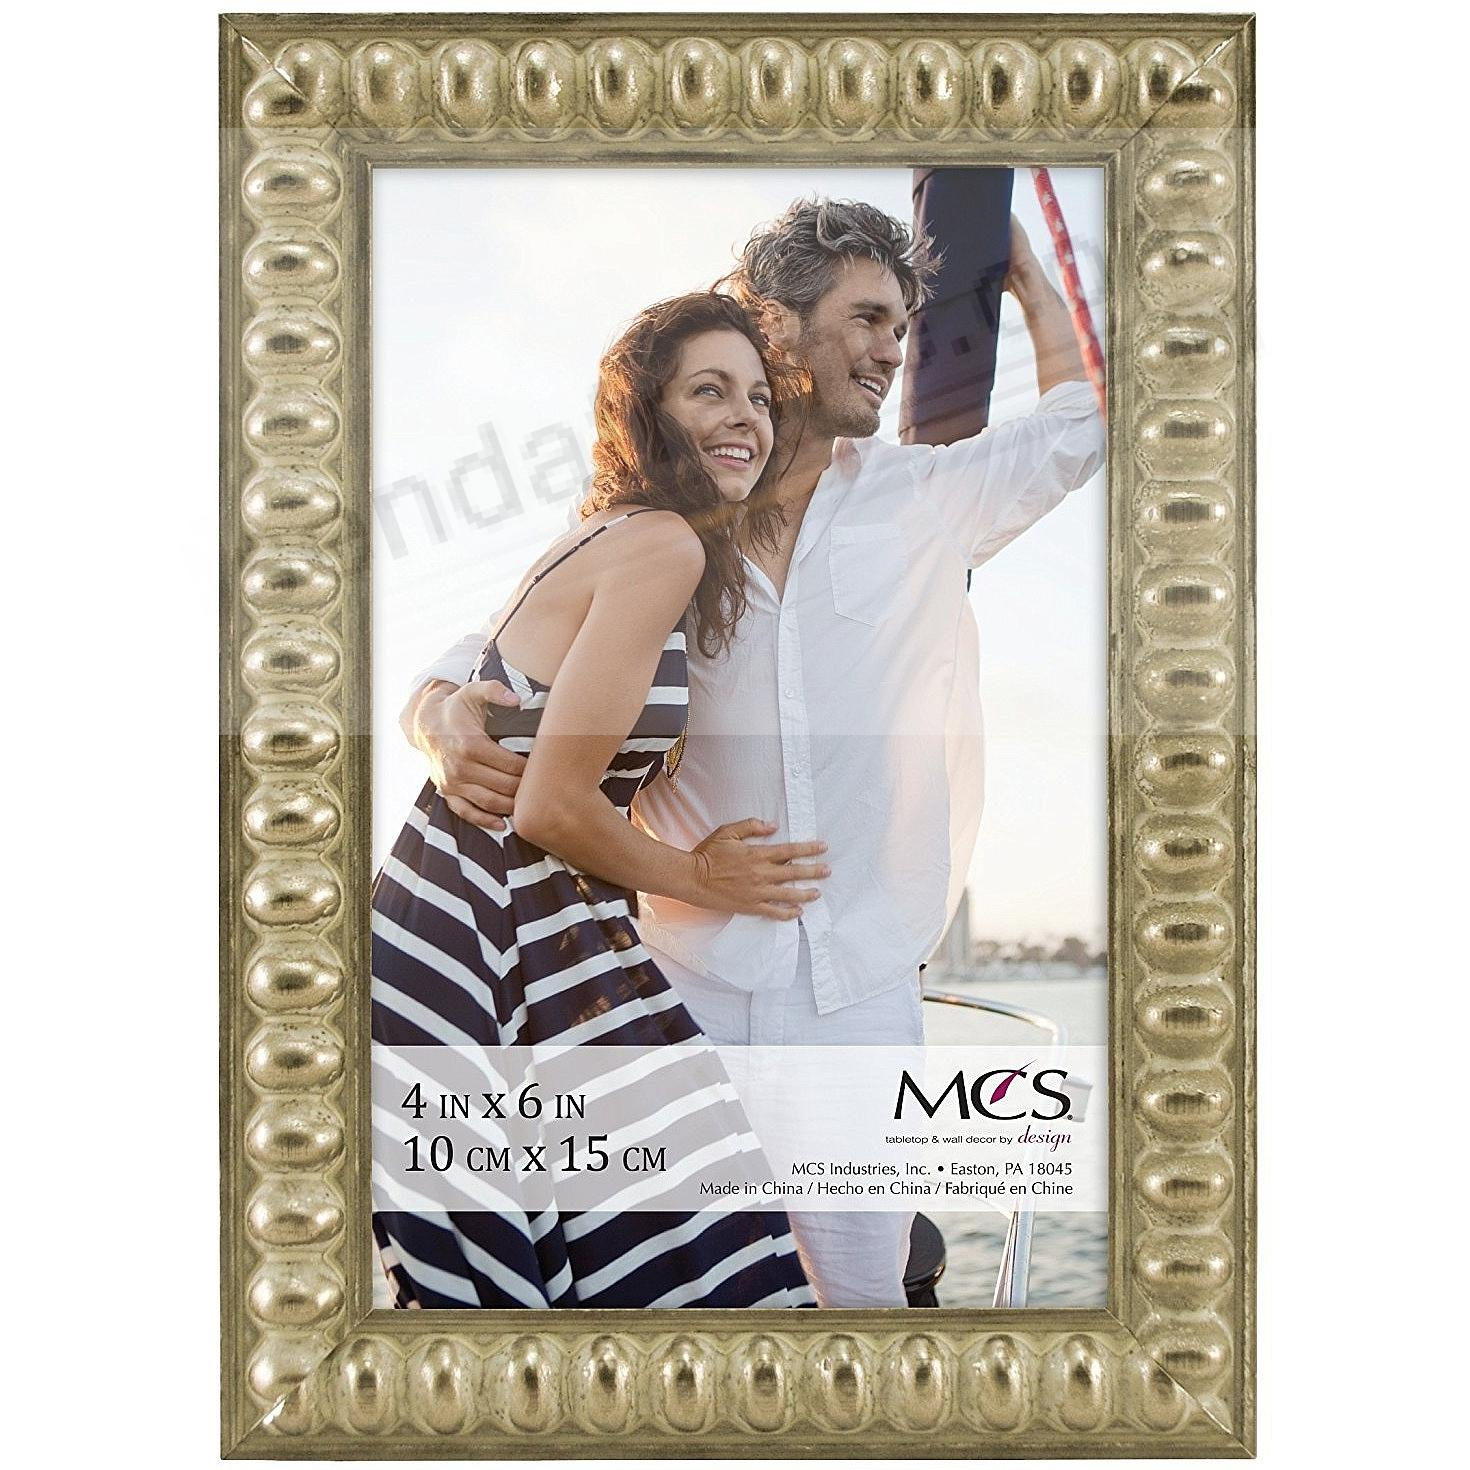 THIN BEAD Wood Champagne frame 4x6 by MCS®